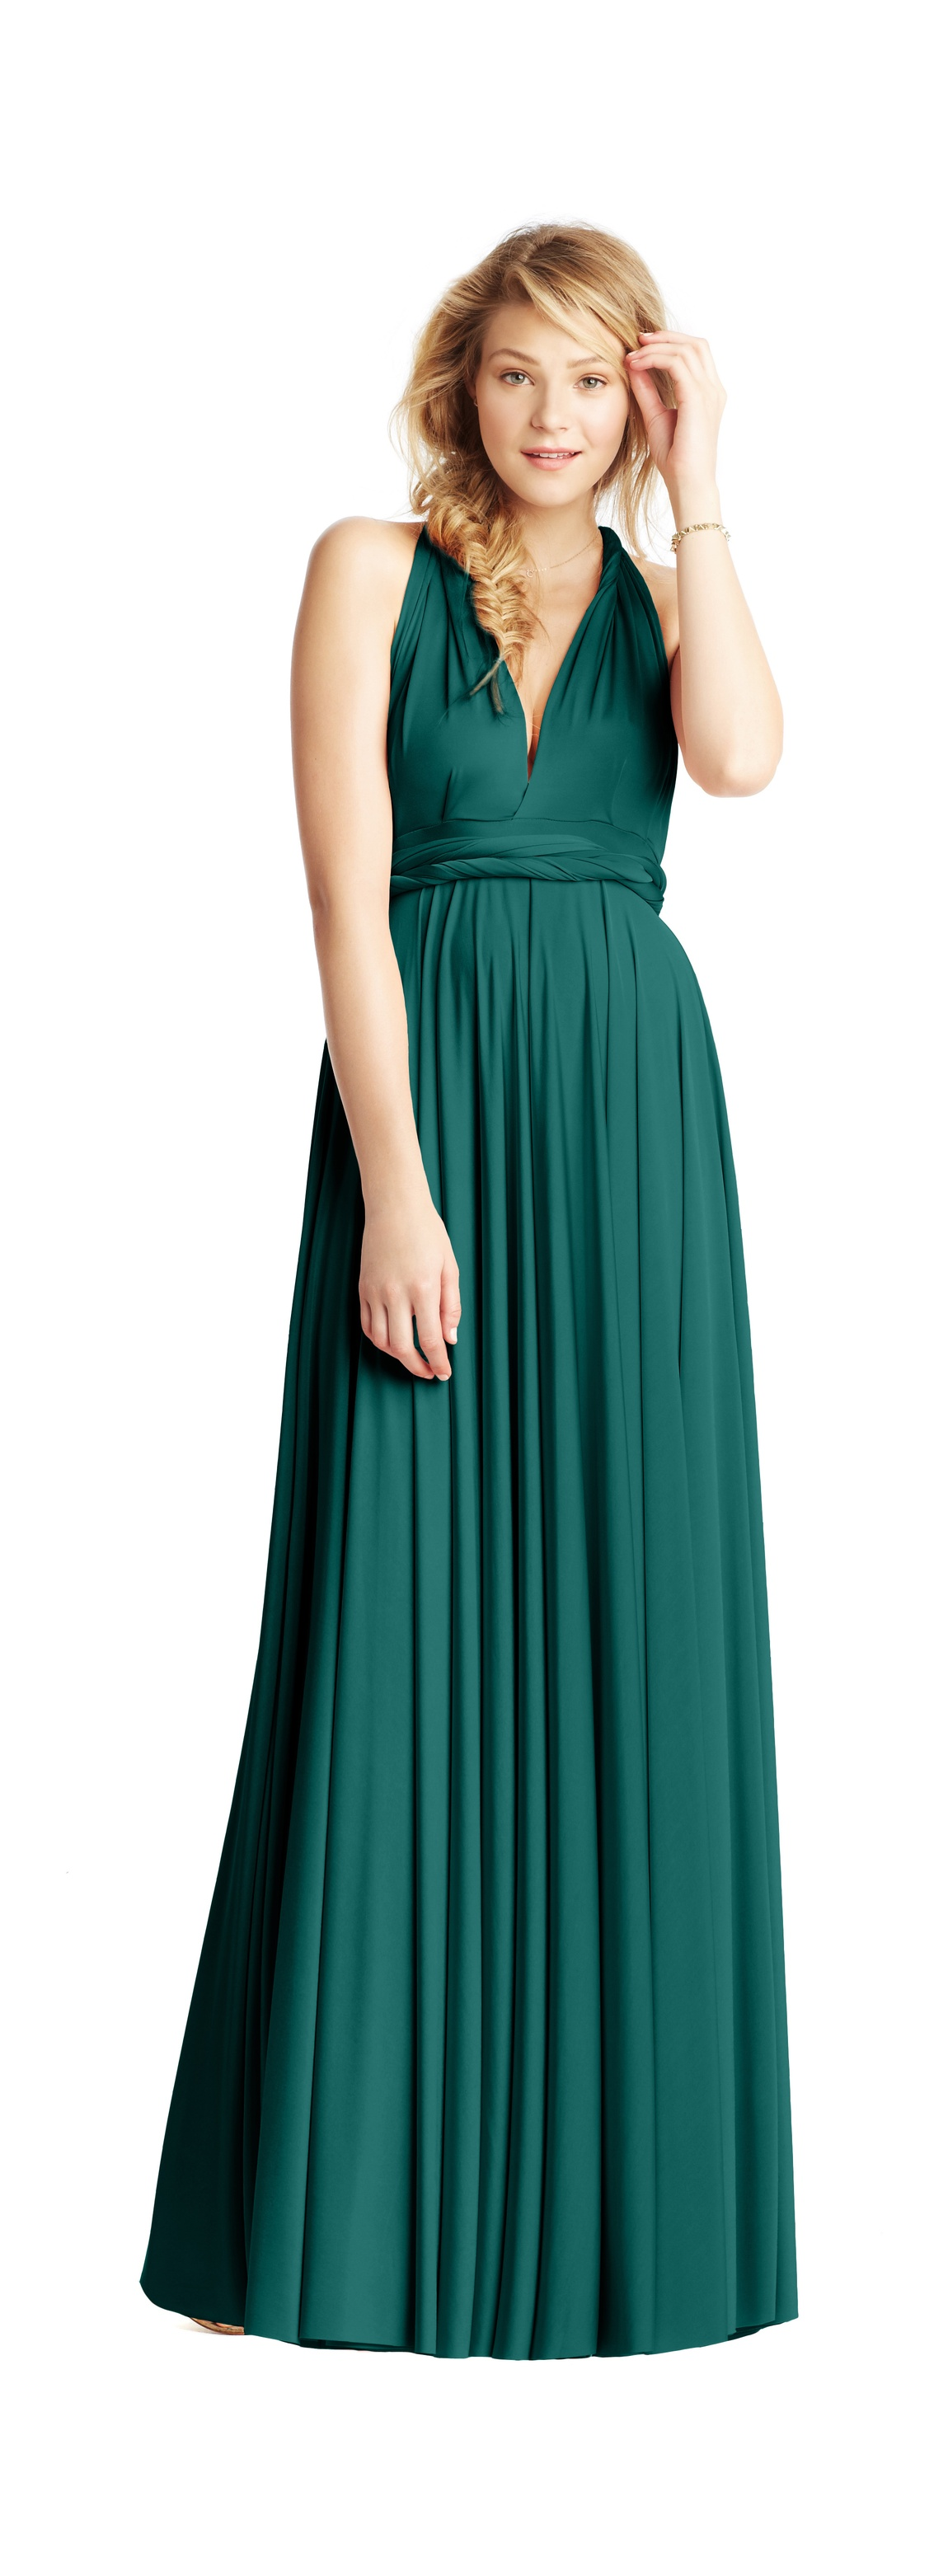 Teal and copper bridesmaid dresses image collections braidsmaid copper bridesmaid dress gallery braidsmaid dress cocktail dress images teal bridesmaids dresses copper bridesmaid dresses all ombrellifo Images